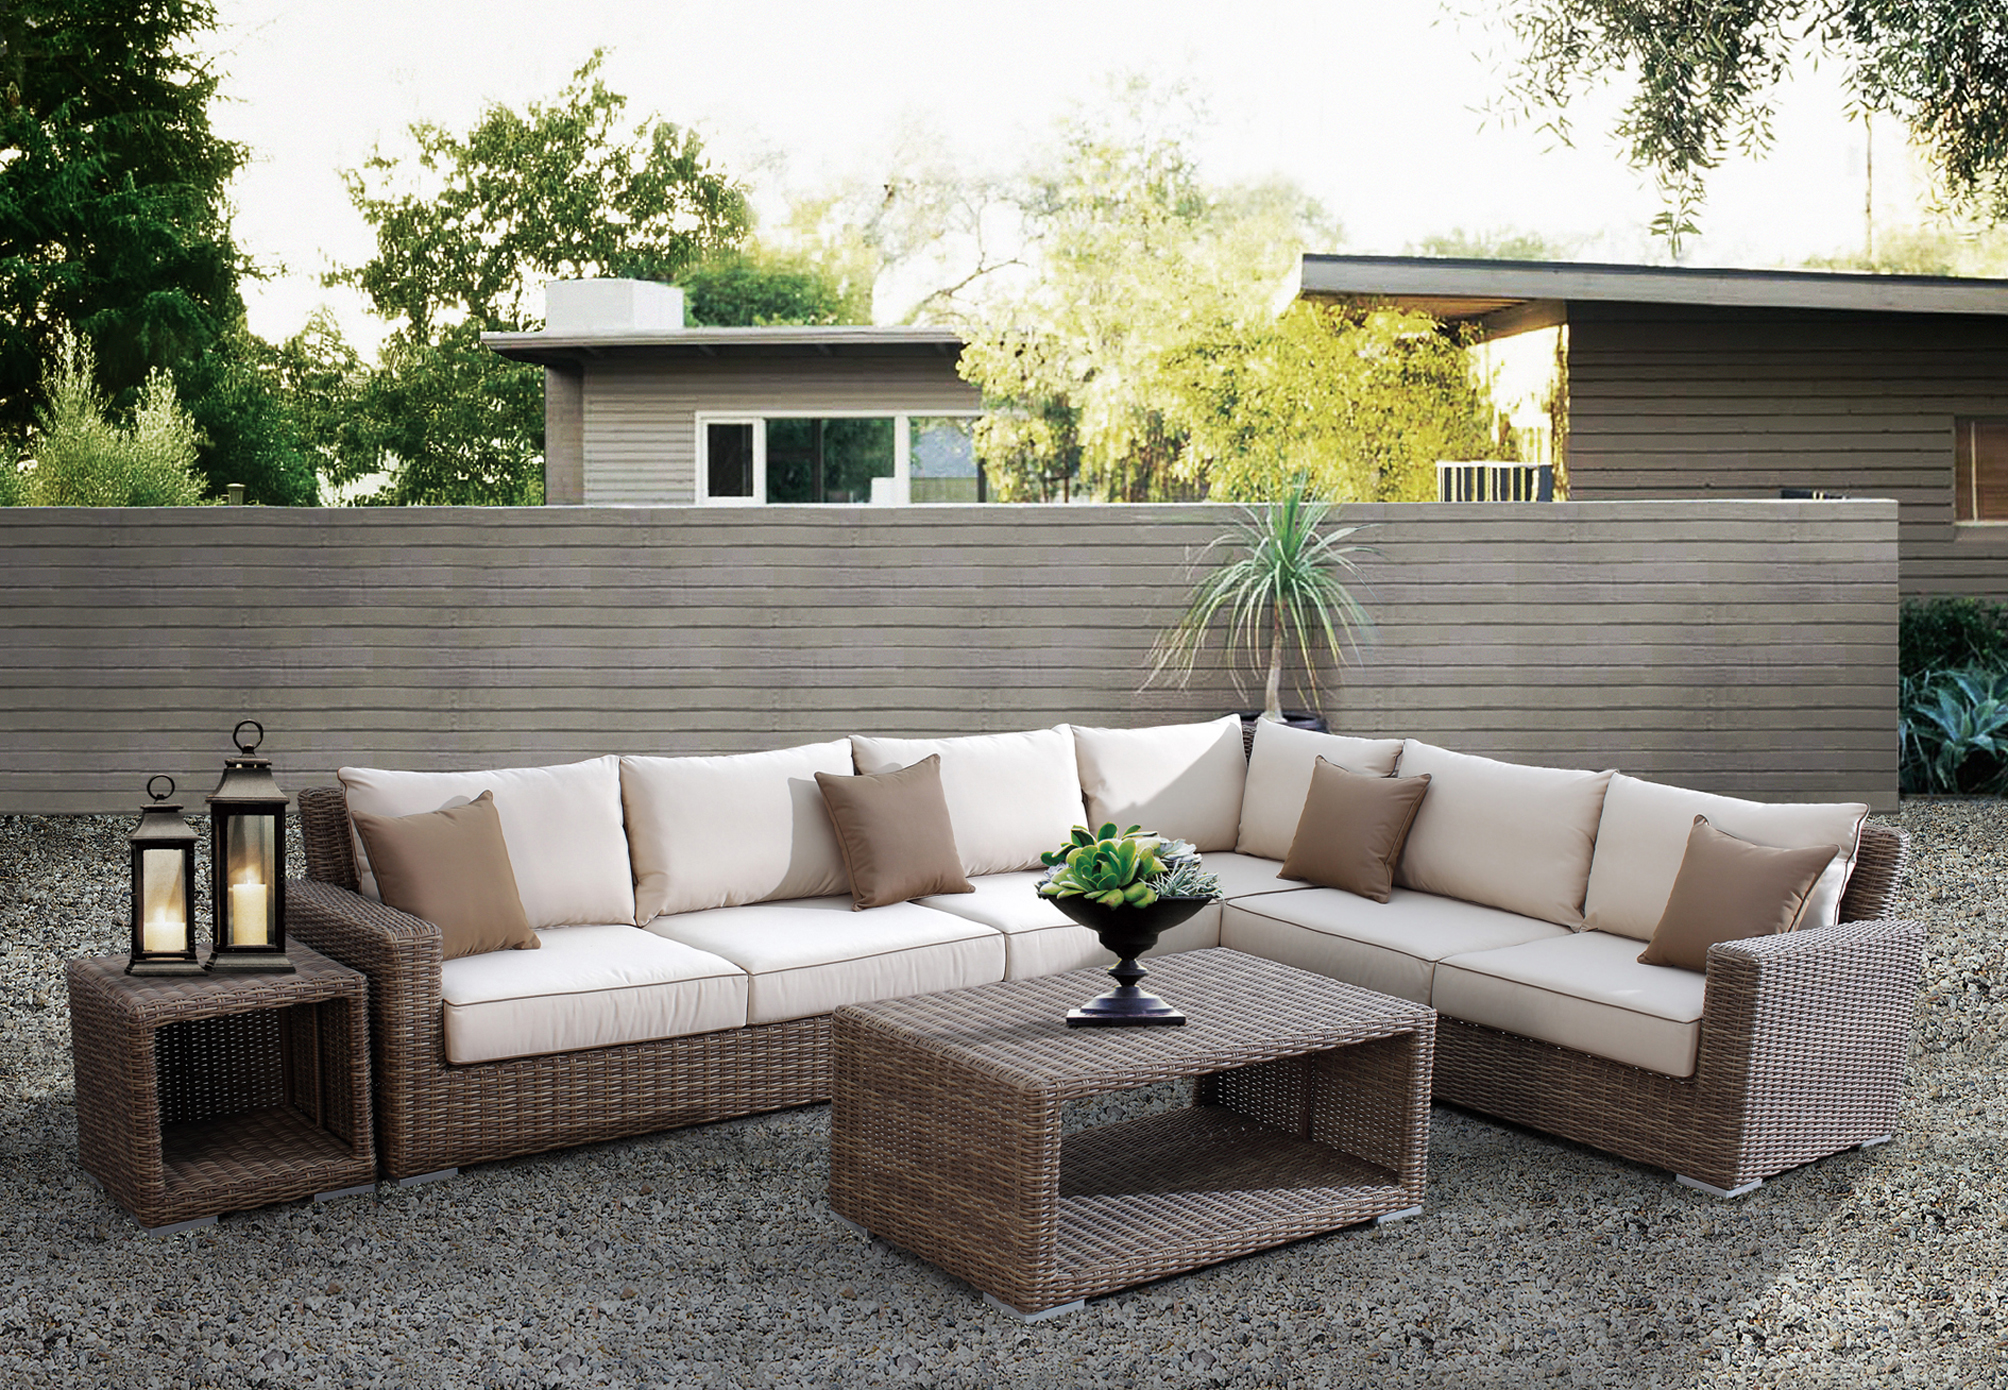 Redesigning your home with outdoor wicker patio furniture for Outdoor wicker furniture